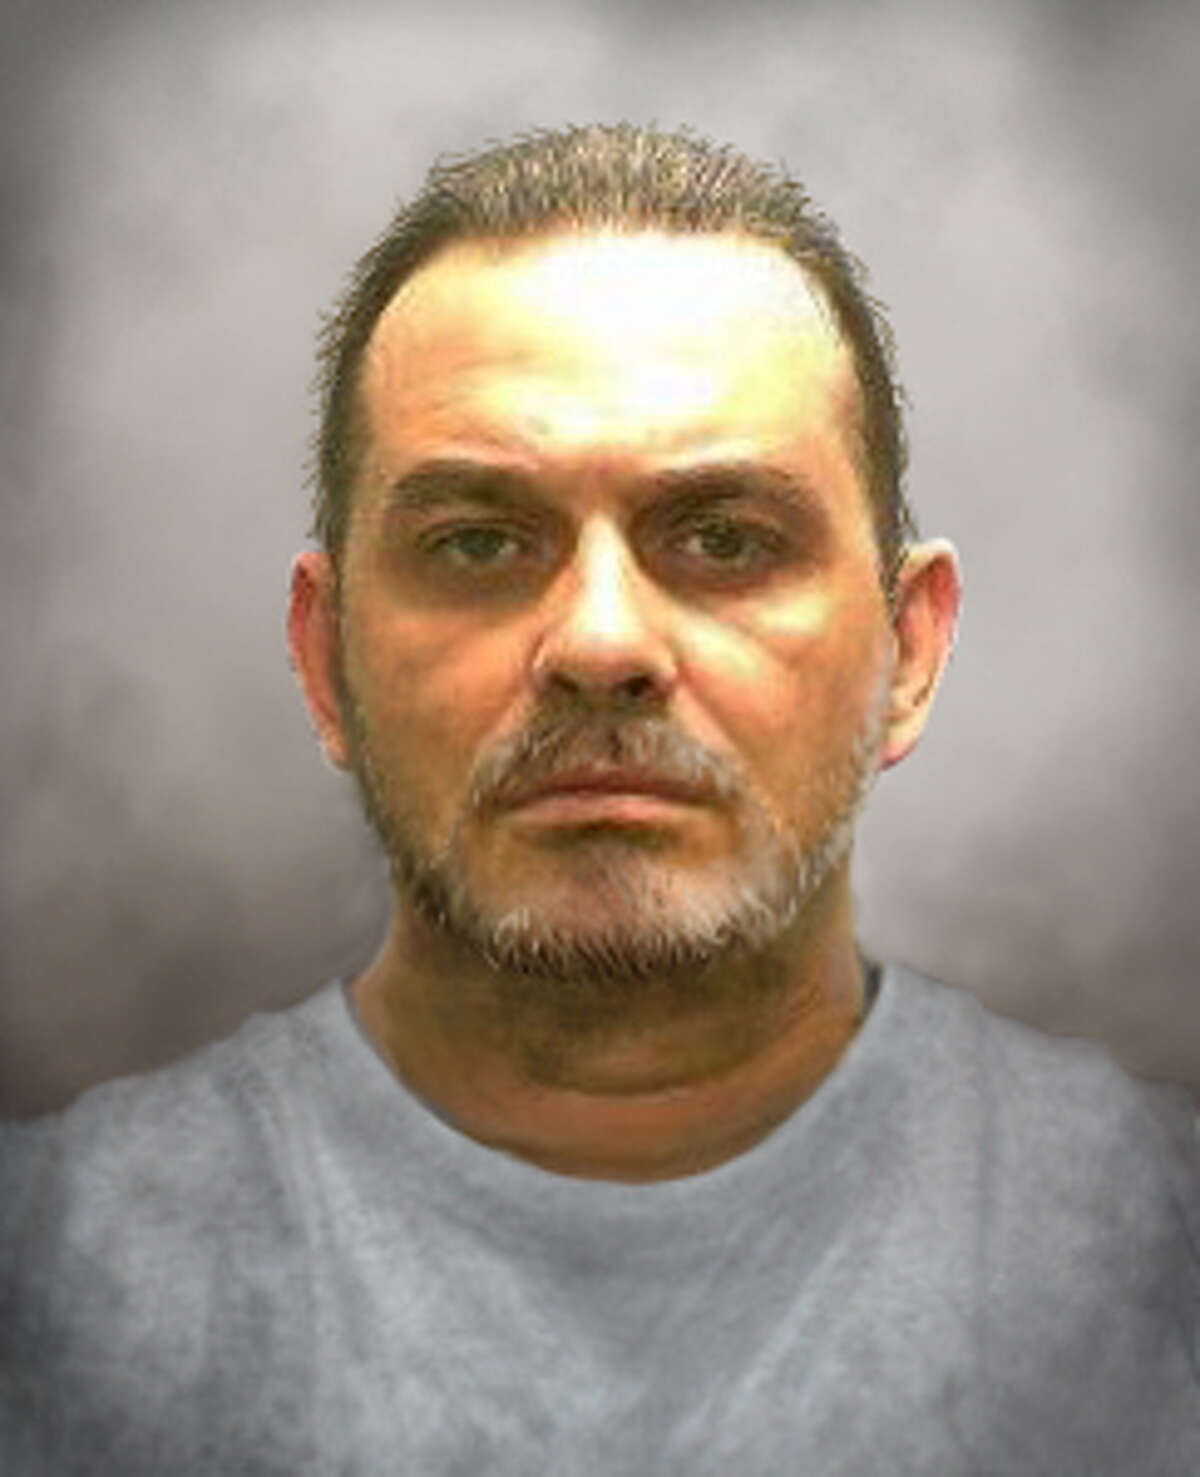 State Police on Wednesday, June 17, 2015, releasied progression photos of what Richard Matt might look like 10 days after escaping from Clinton Correctional Facility in Dannemora. (State Police drawing)